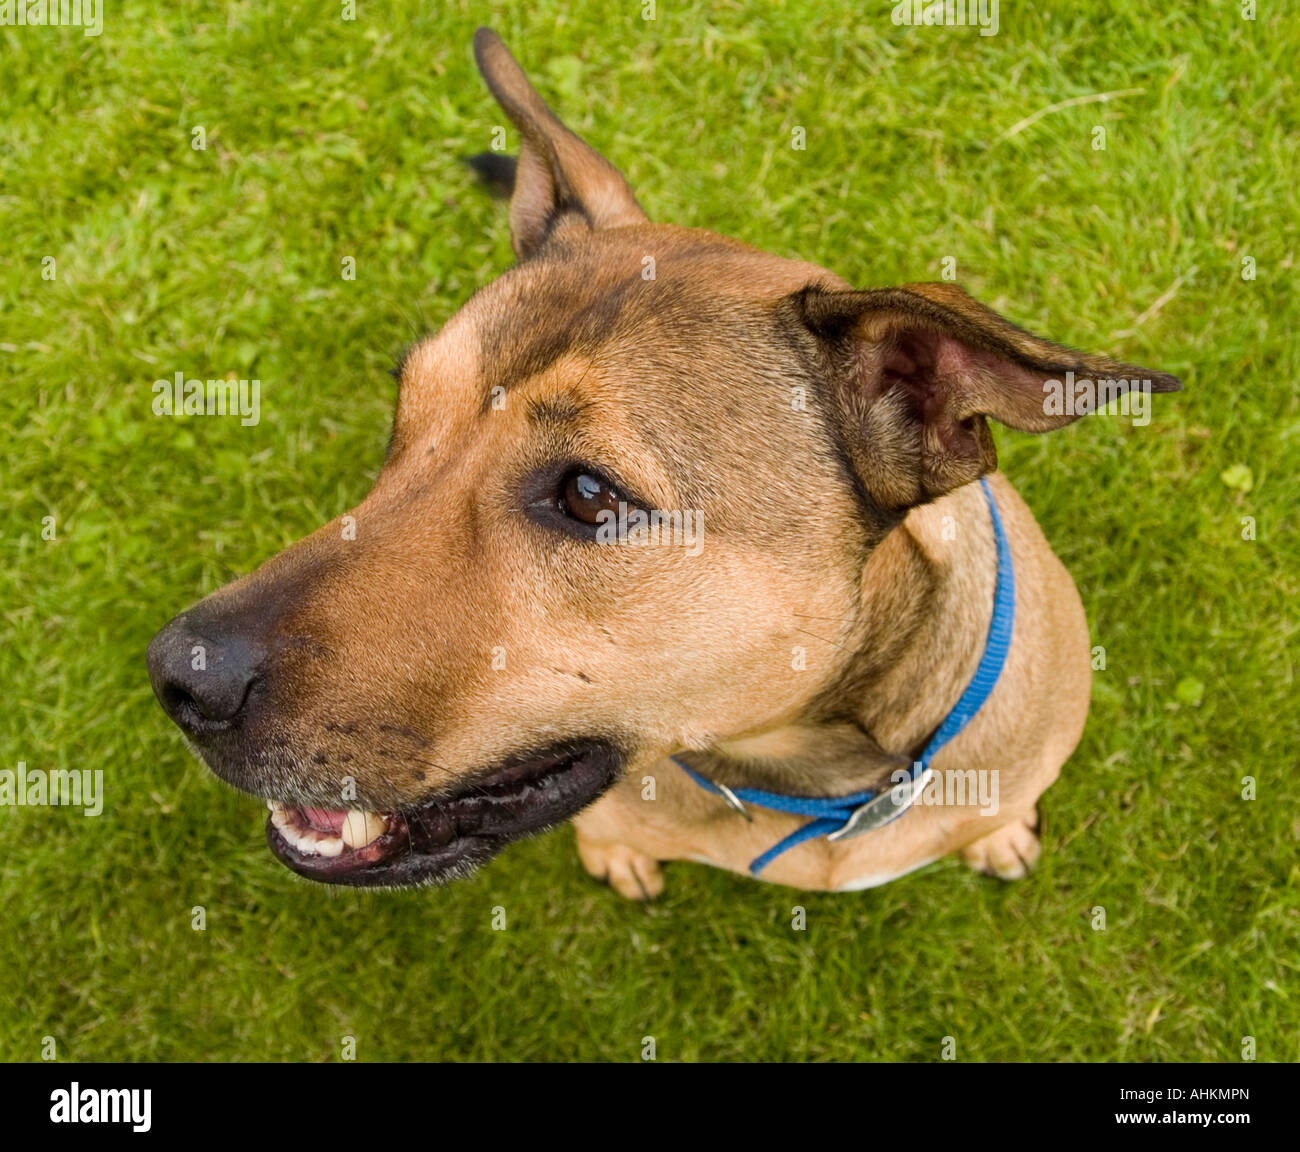 An alert brown dog sits and looks to its side - Stock Image